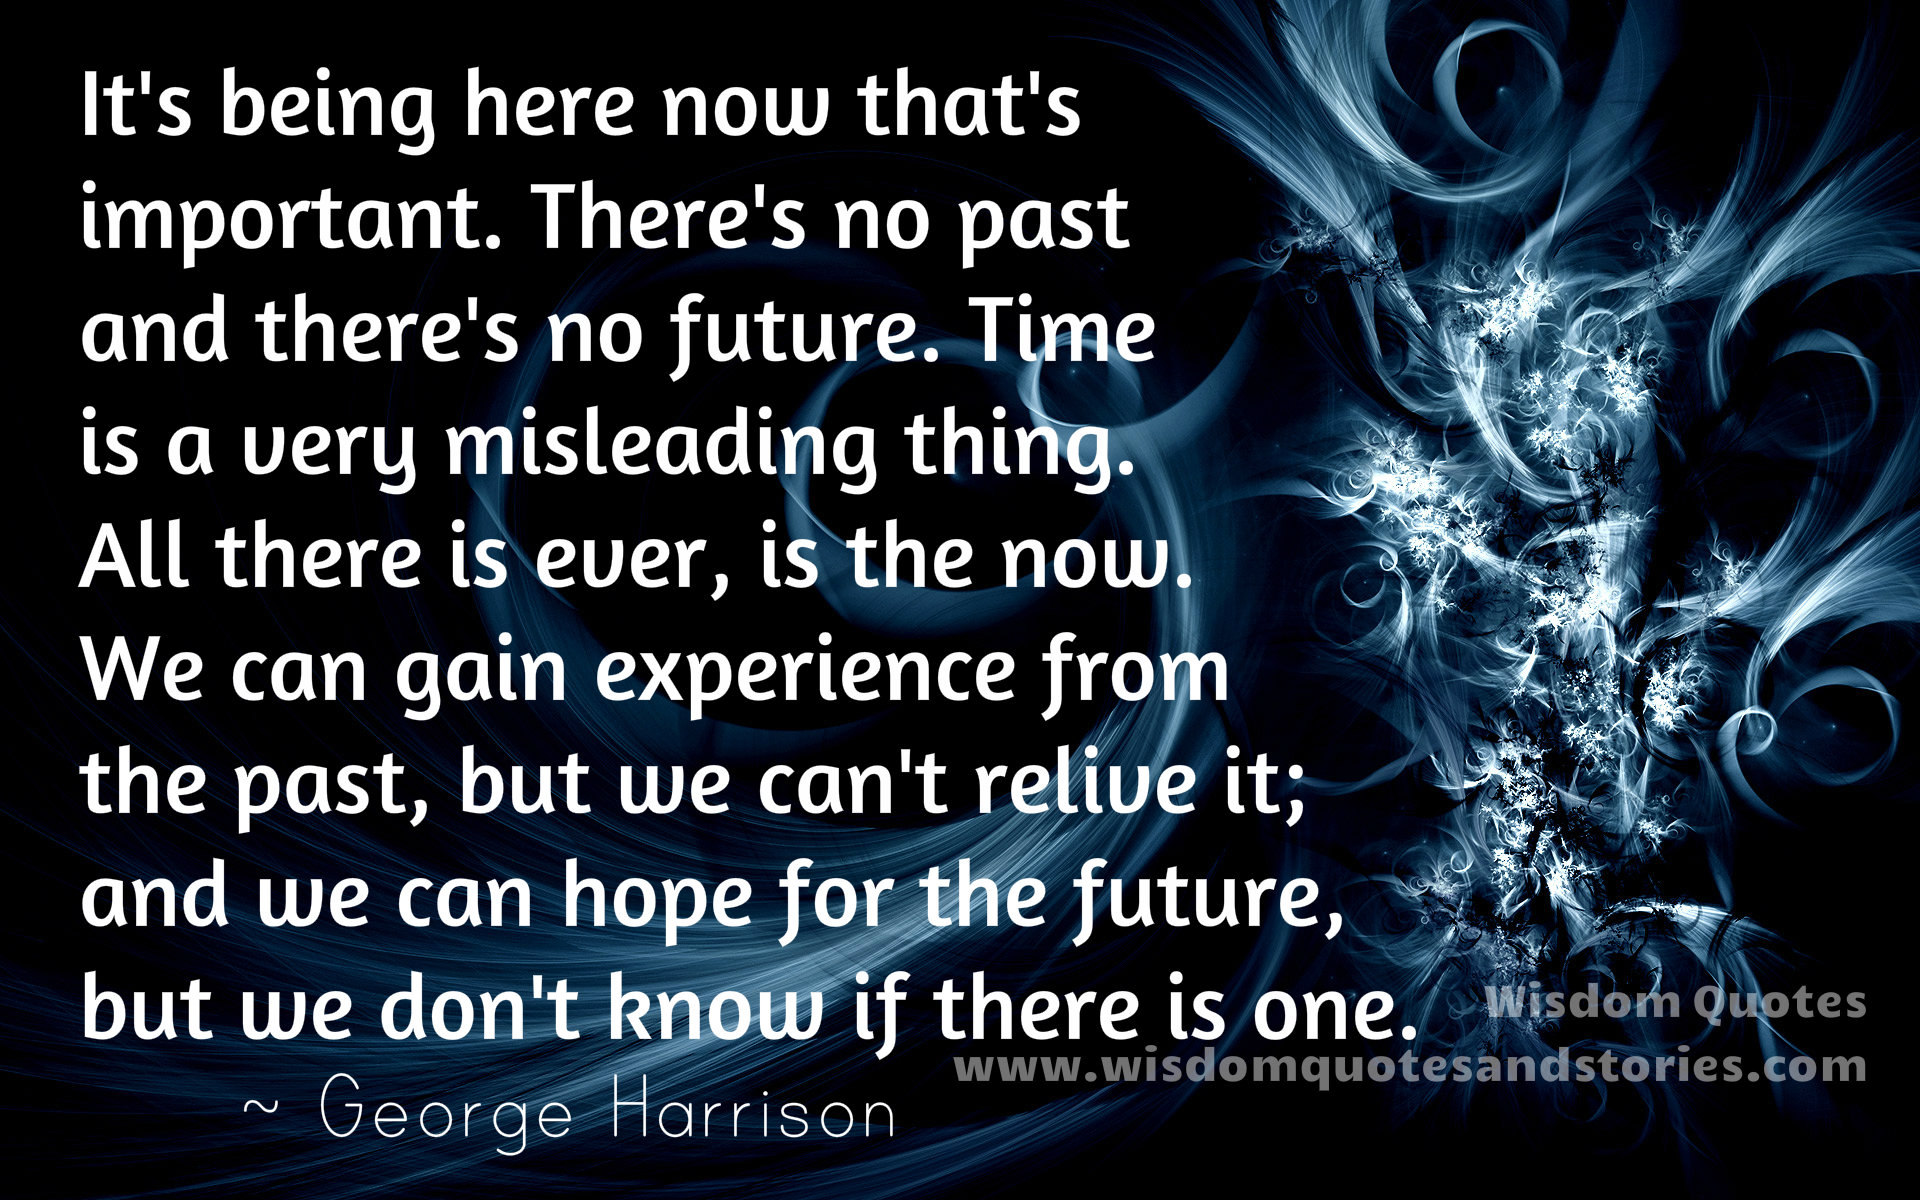 It's being here now that's important. There's no past and there's no future. All there is ever, is the now. We can gain experience from the past, but we can't relive it; and we can hope for the future, but we don't know if there is one - Wisdom Quotes and Stories